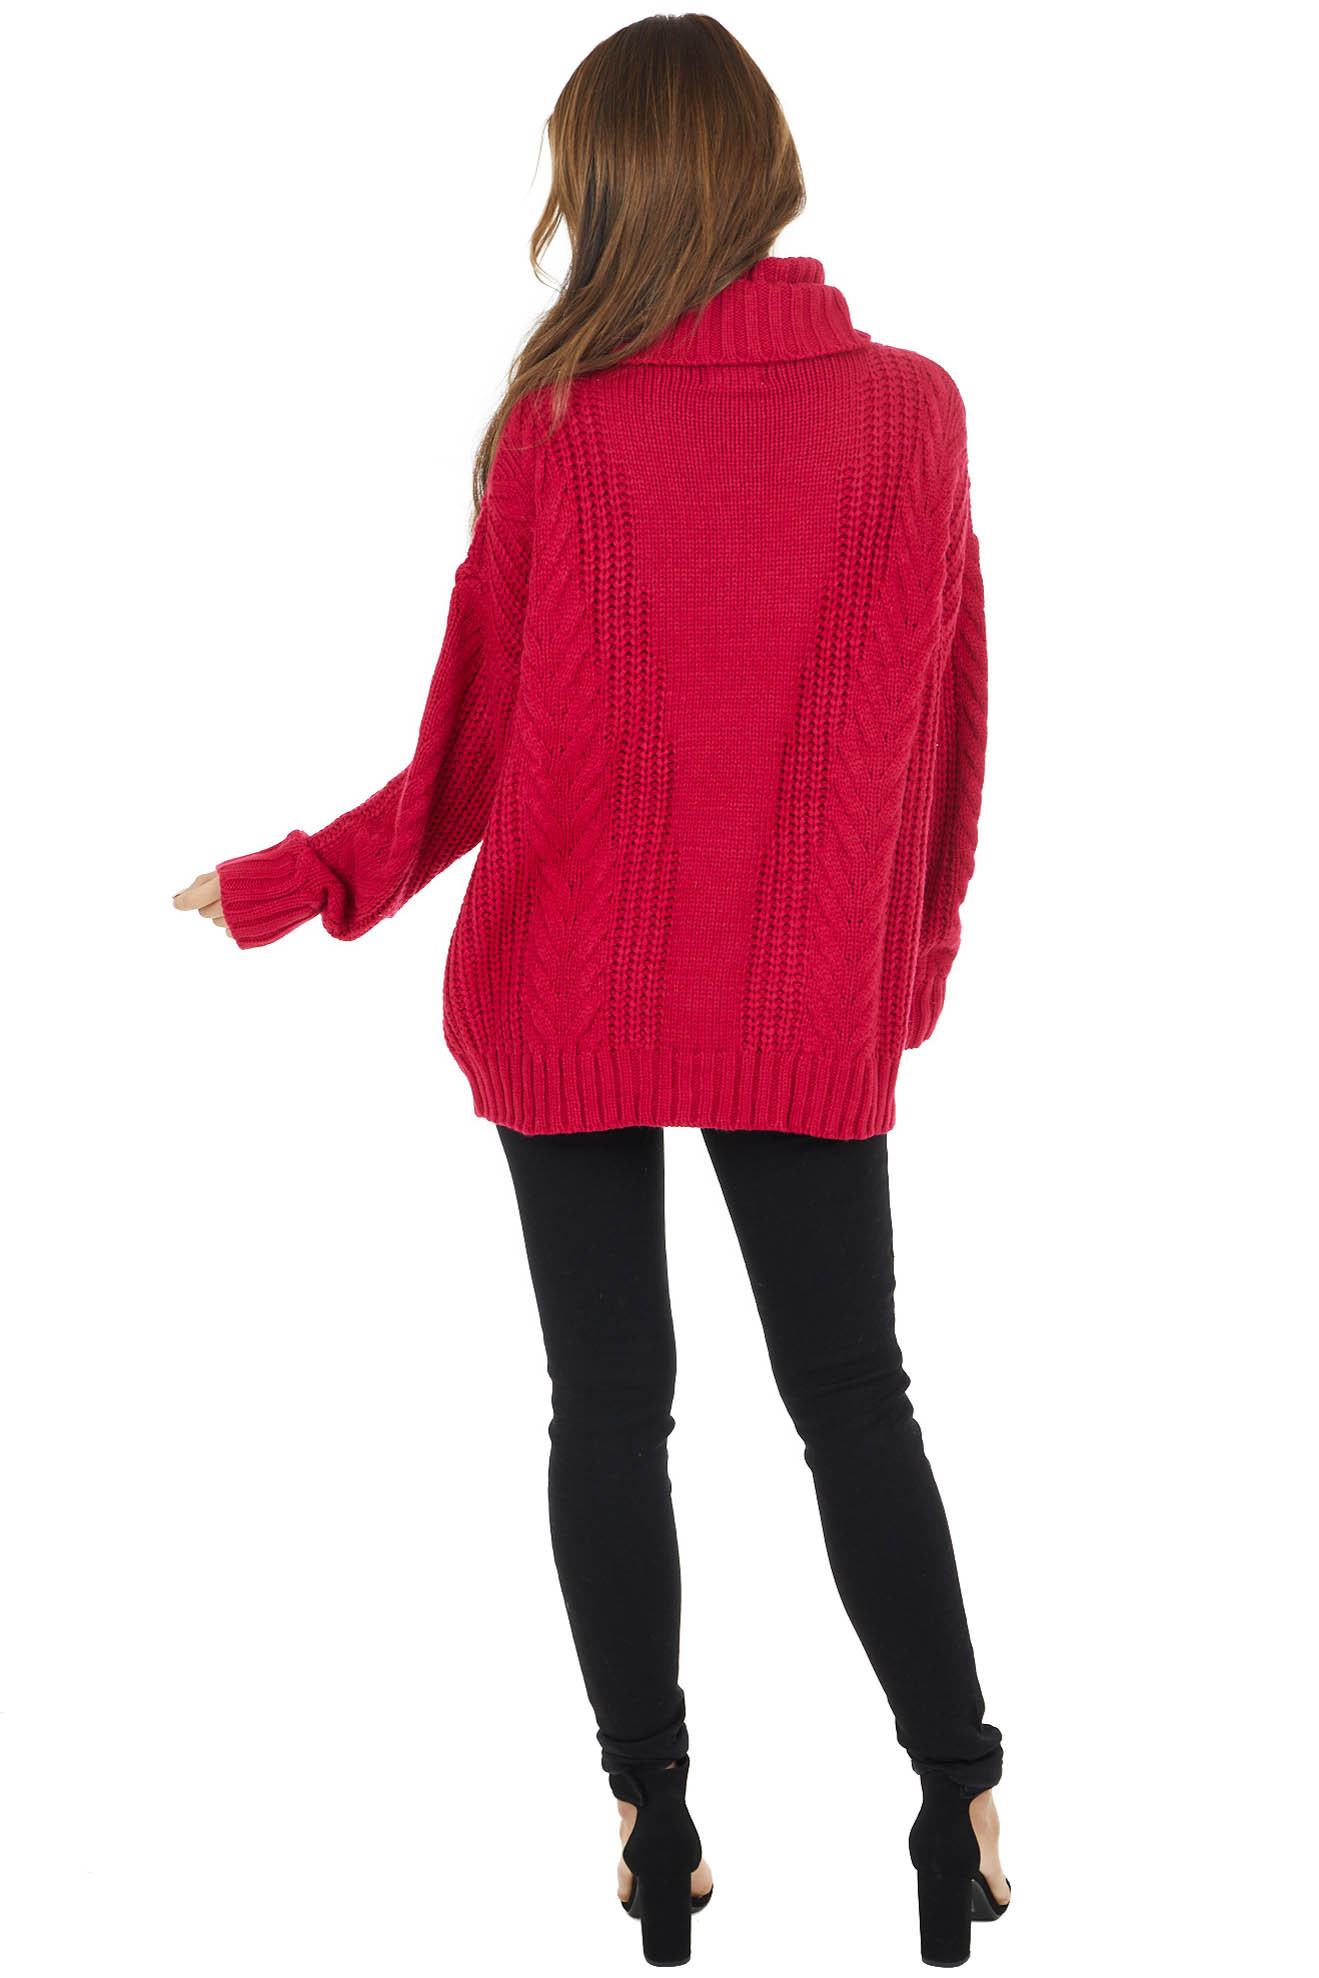 Berry Pink Cable Knit Long Sleeve Sweater with Turtleneck